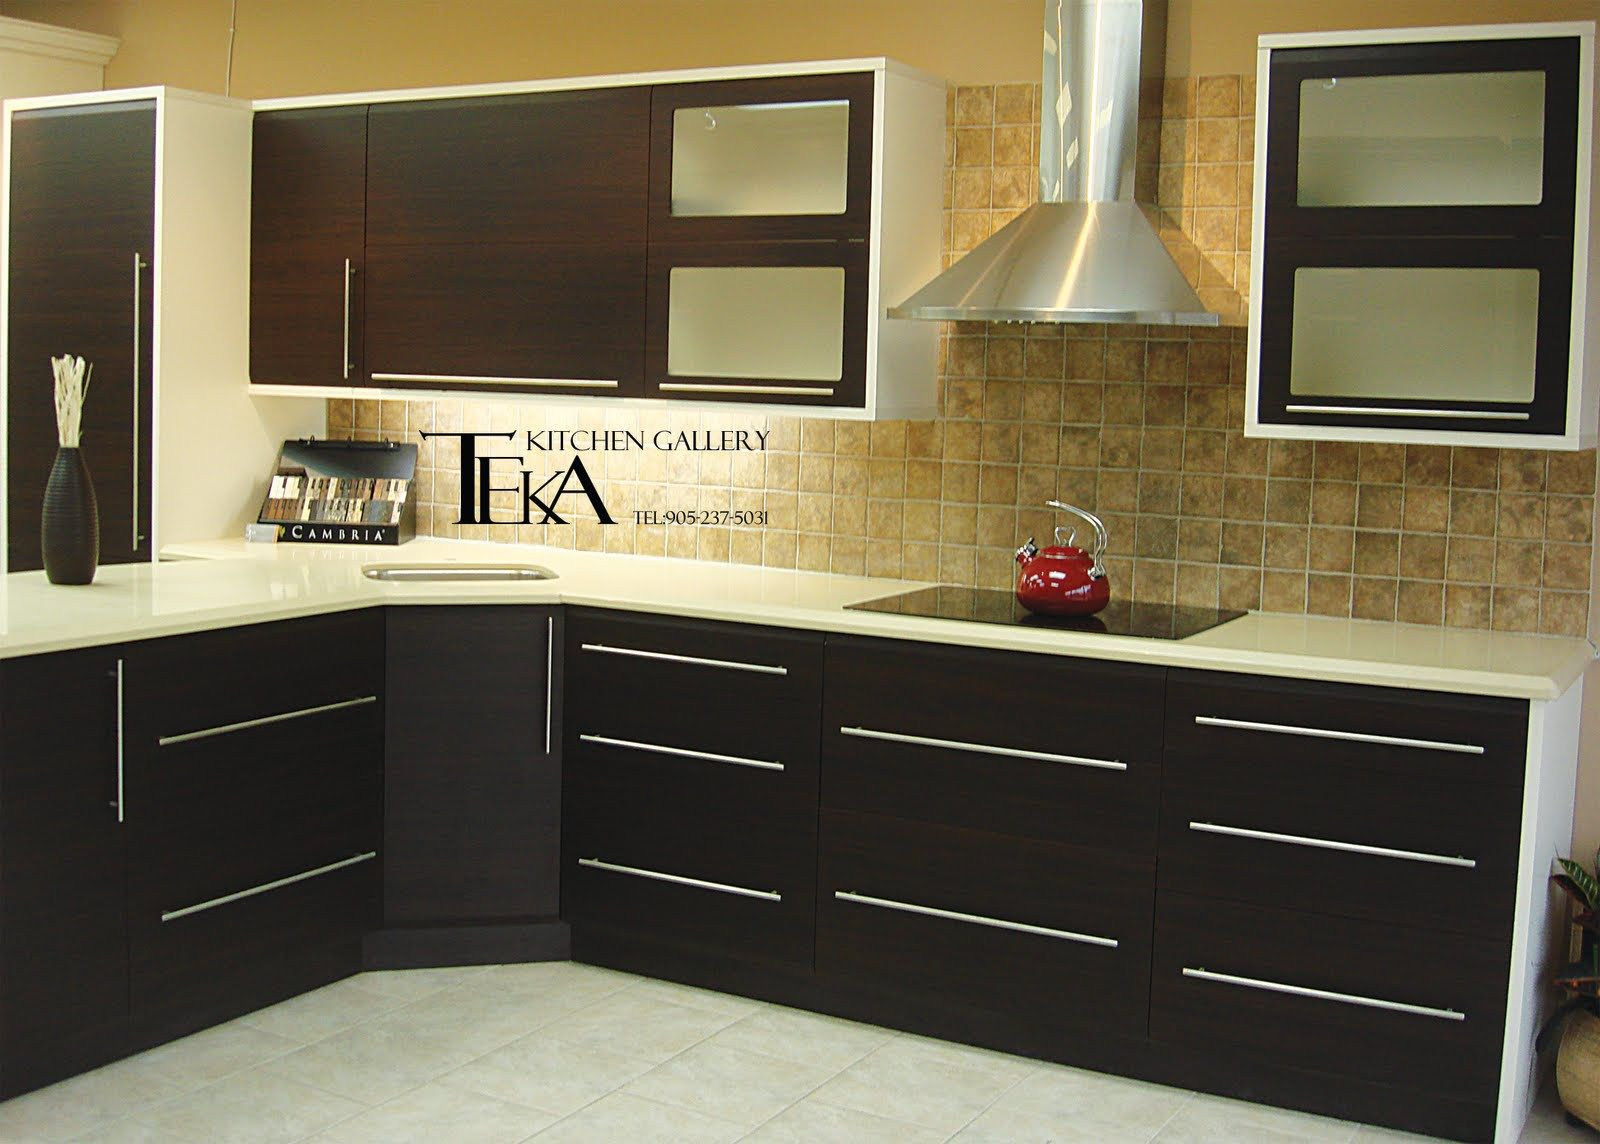 Best ideas about Kitchen Furniture Ideas . Save or Pin Stainless Steel Kitchen Cupboard Handle Pulls Brushed Now.